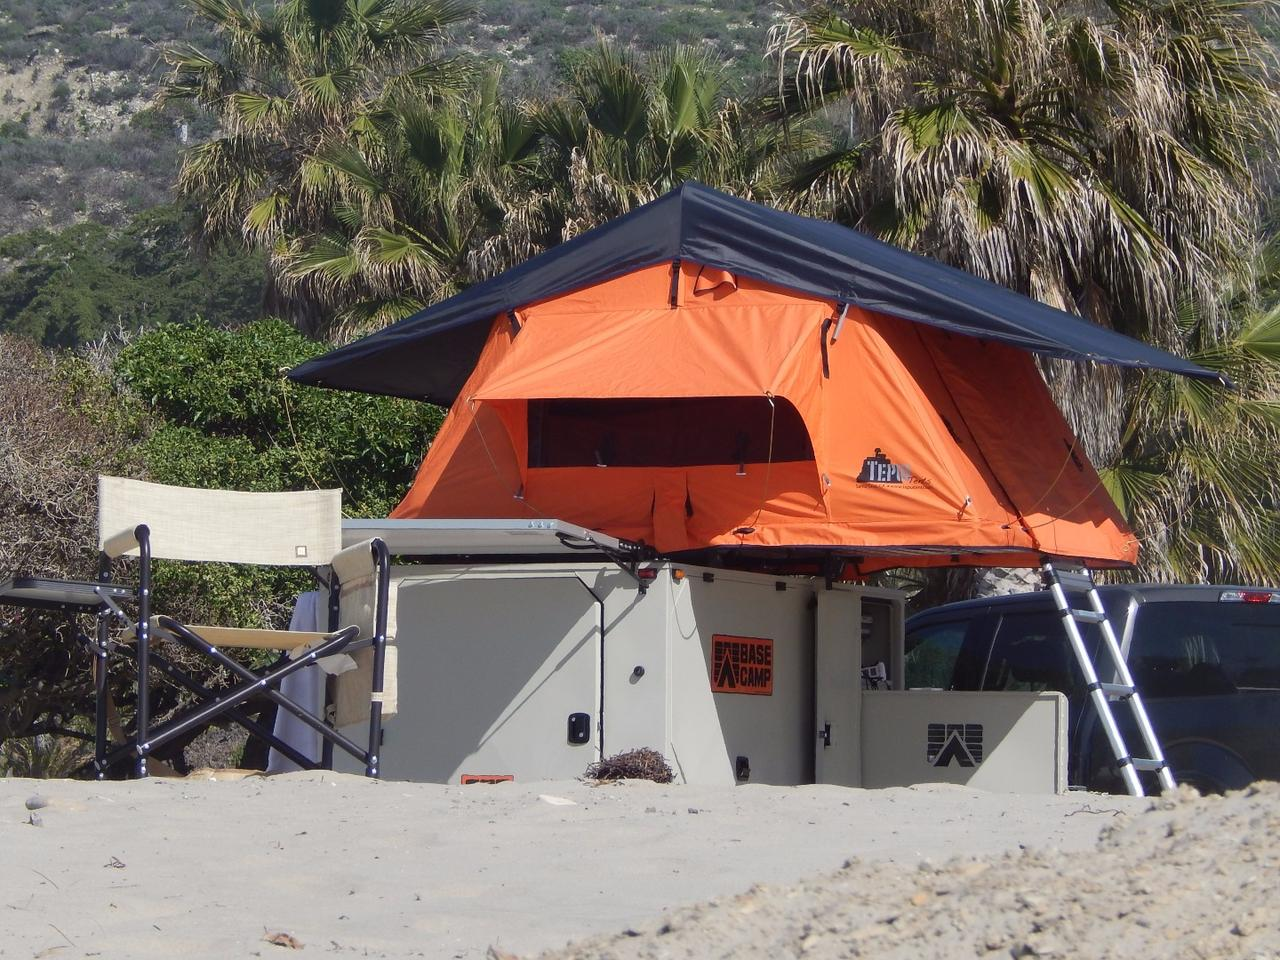 The Mobilight Base Camp is ready to explore ... or stay put and relax